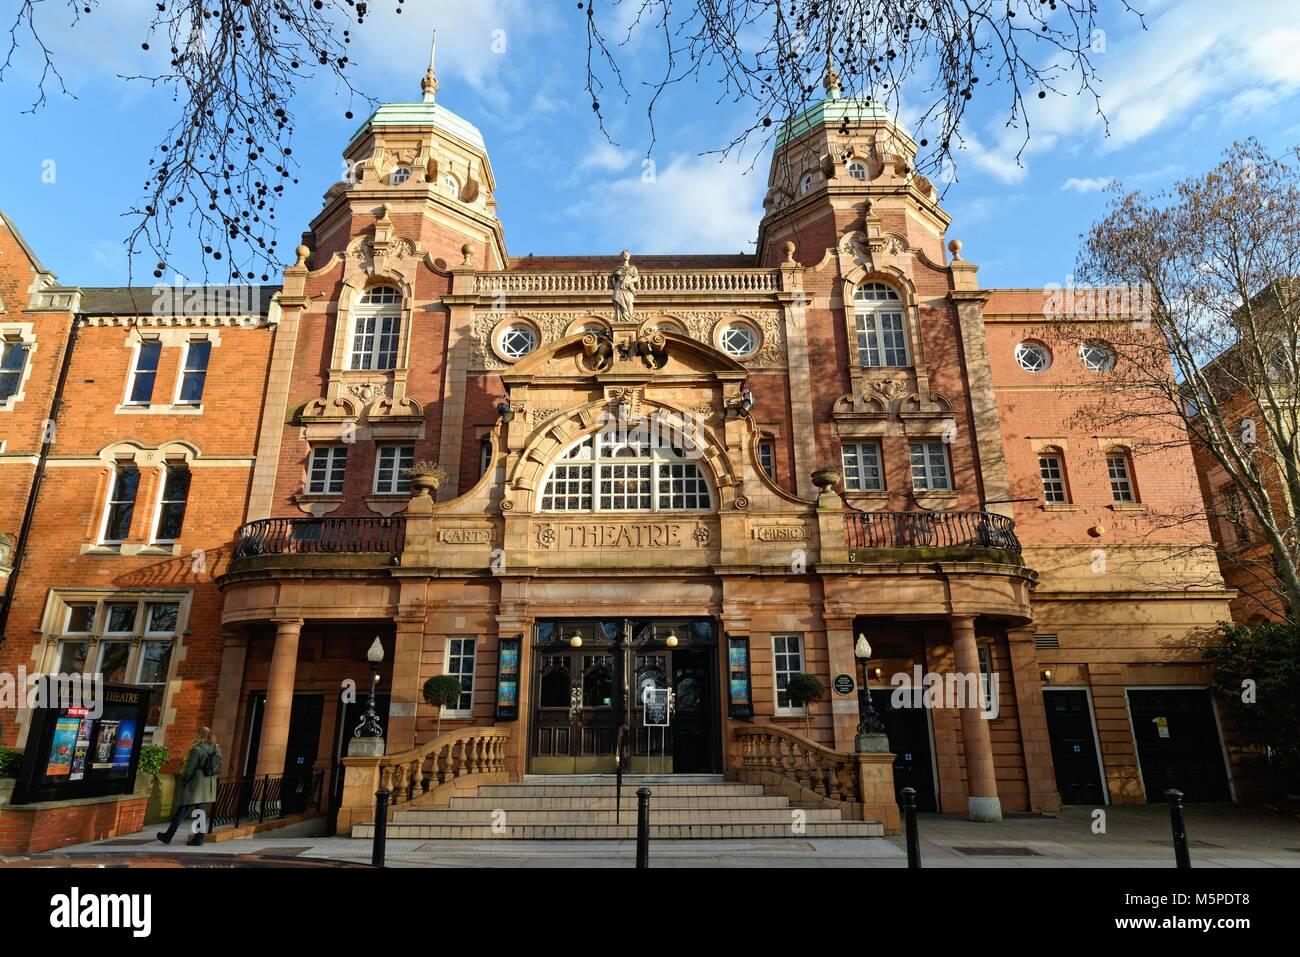 Exterior of Richmond Theatre, Richmond on Thames Greater London England UK - Stock Image